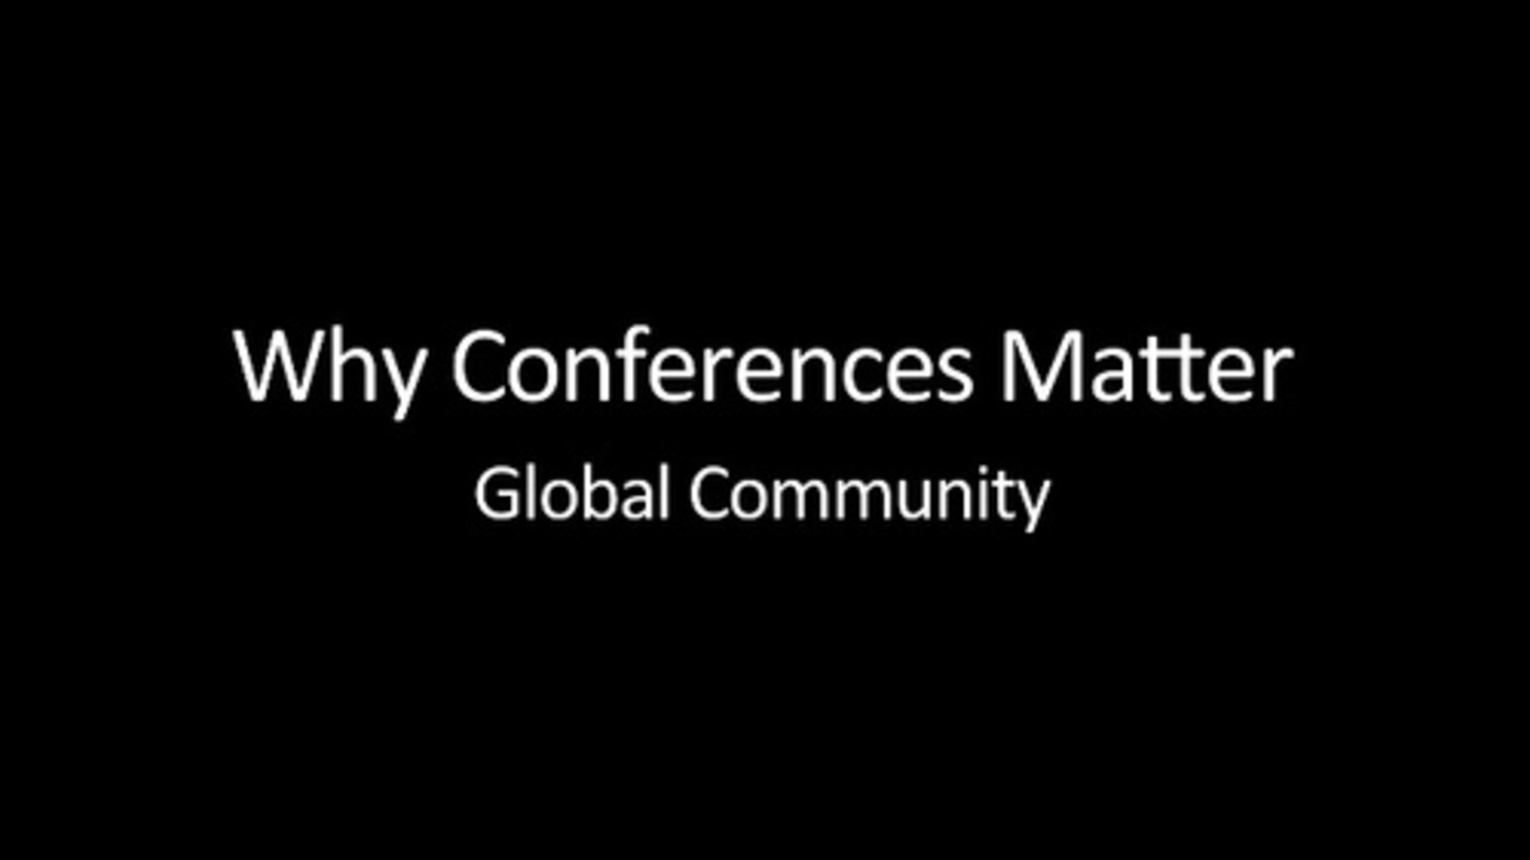 Why Conferences Matter: The Global Technical Community